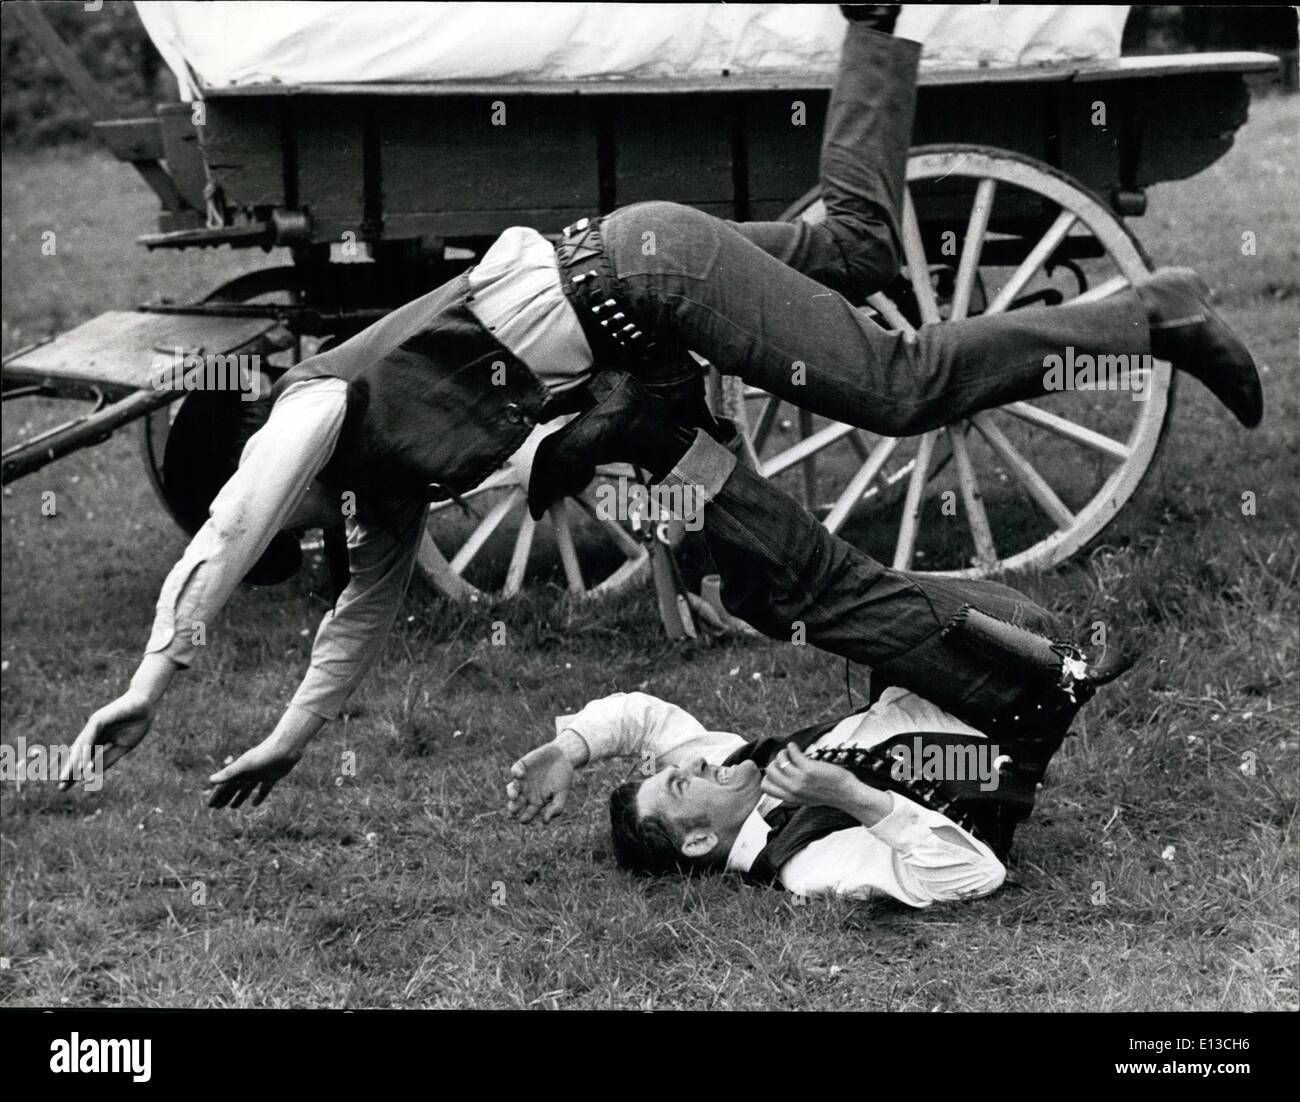 Mar. 02, 2012 - Two Remuds Western Club members rehearse a fight at the club's ''prarie'' in Chartridge, Bucks. - Stock Image